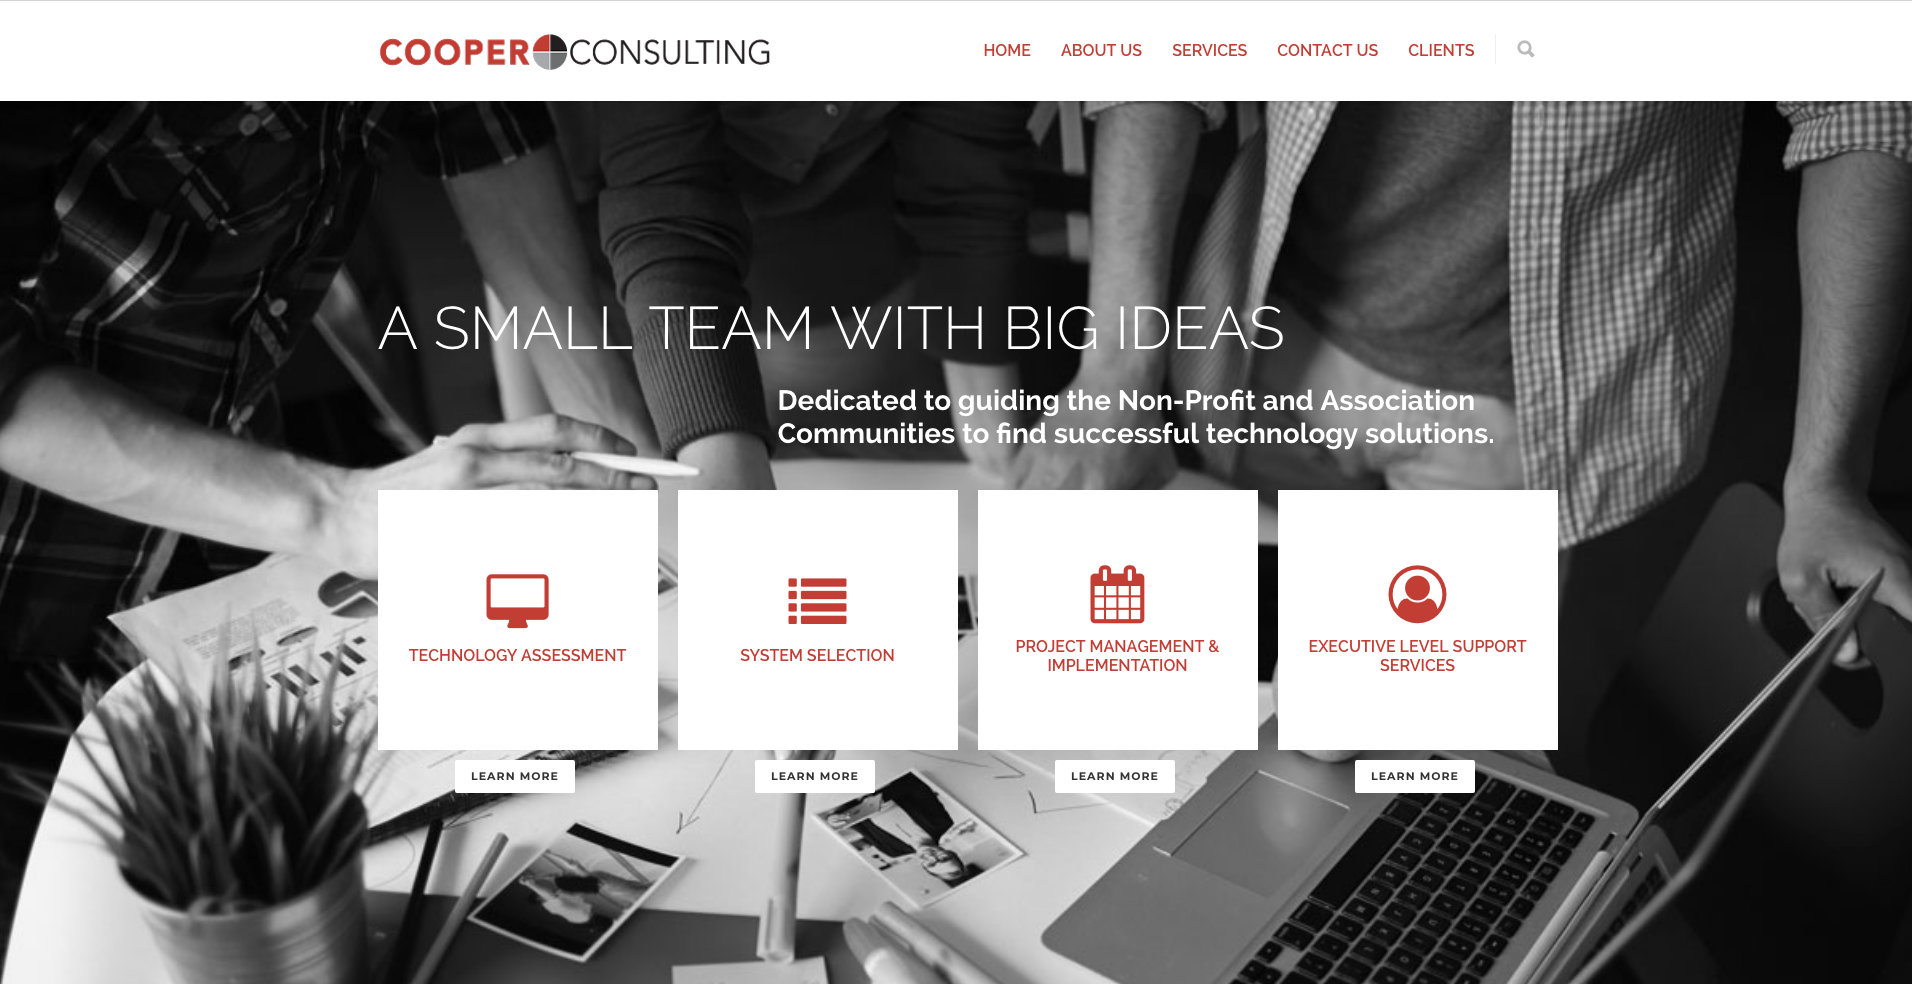 Cooper Consulting Website designed by Big Rock Studio